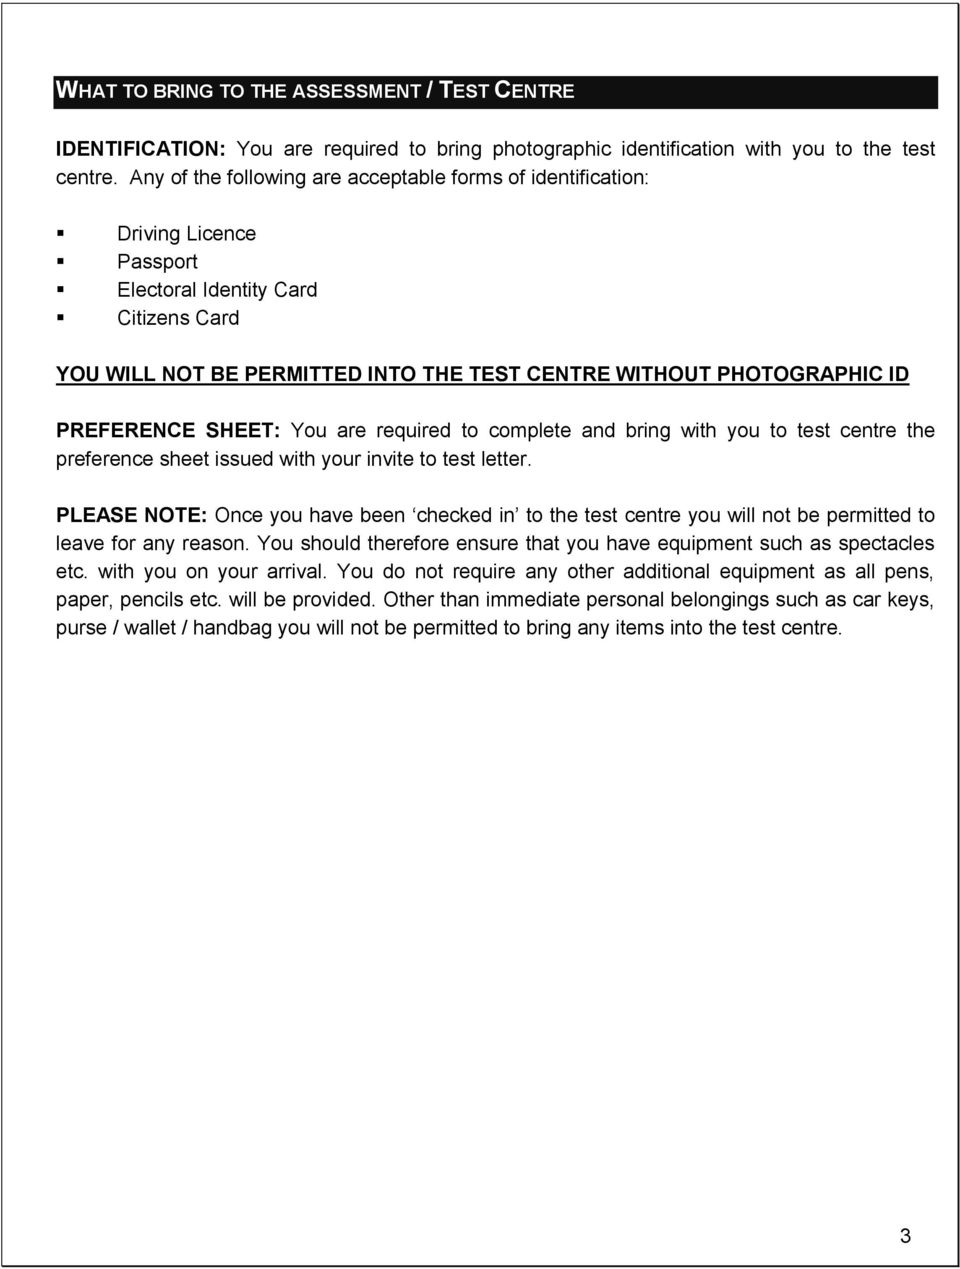 PREFERENCE SHEET: You are required to complete and bring with you to test centre the preference sheet issued with your invite to test letter.